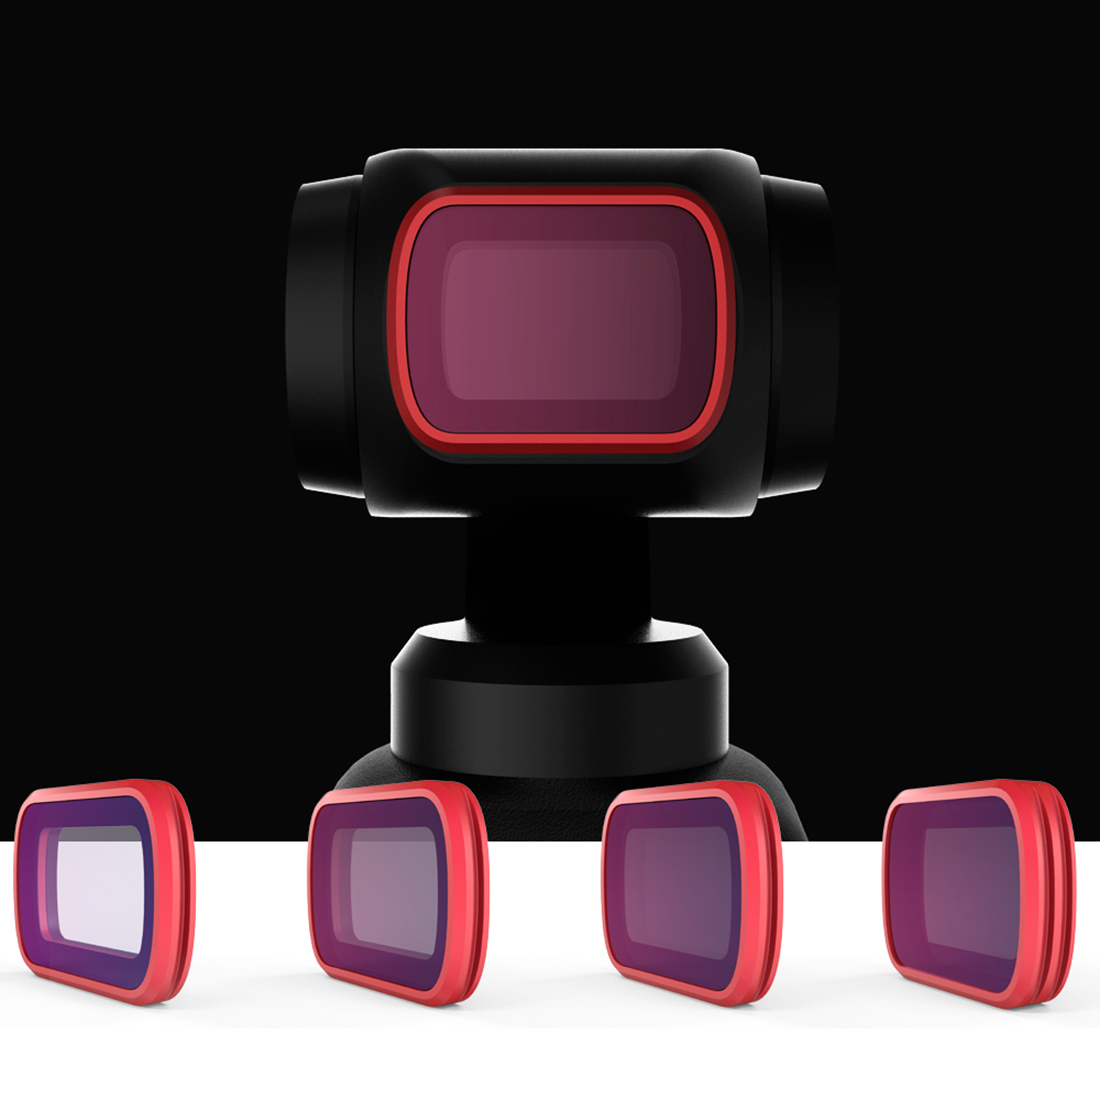 PGYTECH Preorder Sales 4Pcs Professional Version Filter Set with ND8/PL ND16/PL ND32/PL ND64/PL for DJI OSMO Pocket